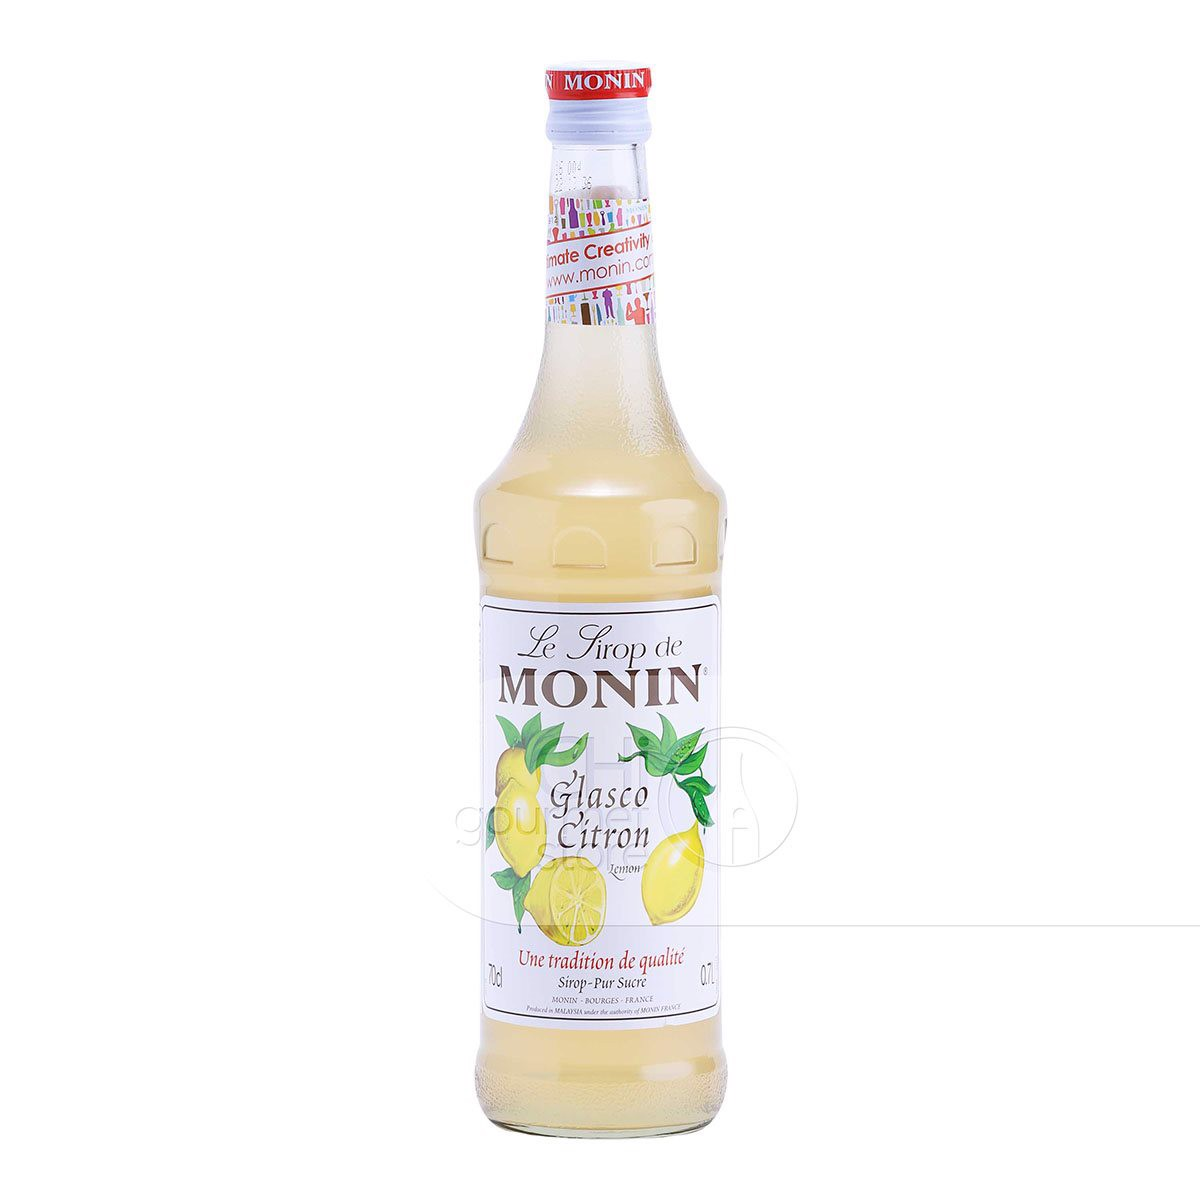 Syrup Lemon Glasco Citron 700ml - Monin